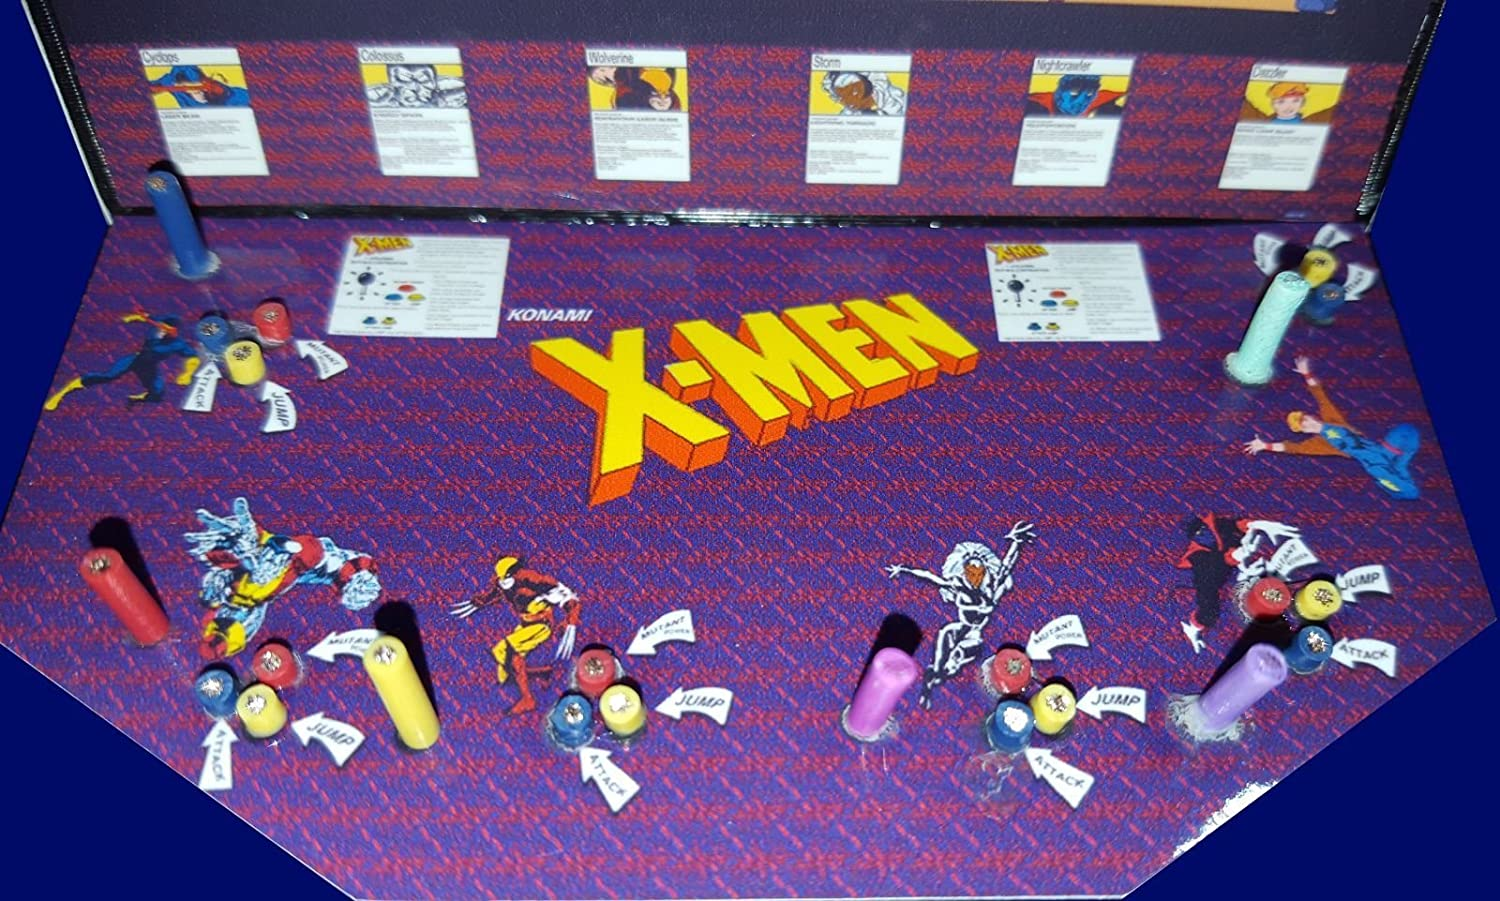 Amazon.com  Mini X-men 6 Player Arcade Cabinet Collectible Display  Everything Else  sc 1 st  Amazon.com & Amazon.com : Mini X-men 6 Player Arcade Cabinet Collectible Display ...